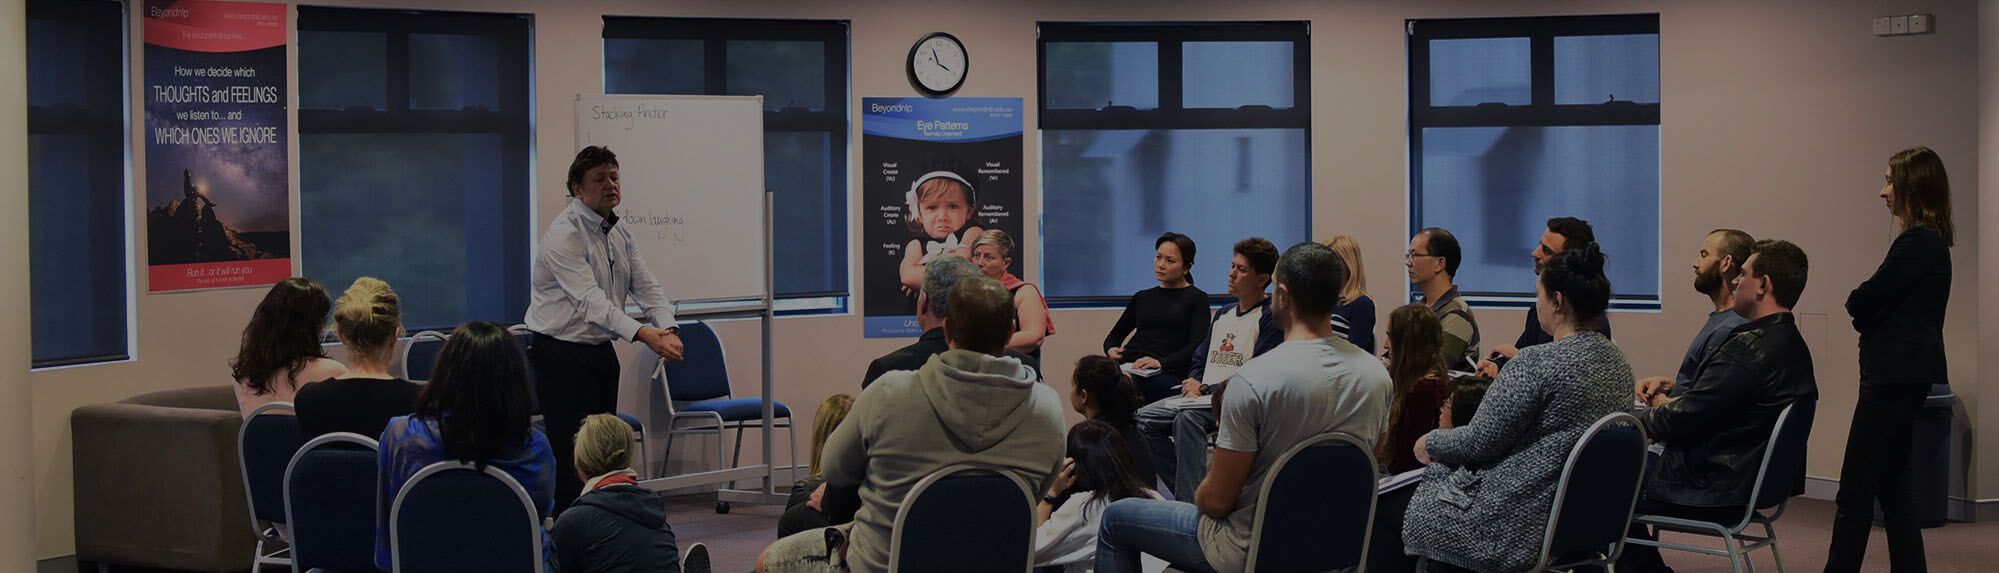 Institute of Applied Psychology, IAP, NLP, Neuro Linguistics, Neuro Linguistic Programming, Hypnosis, Hypnotherapy, nlp, Neuro linguistic programming, natural language processing, nlp courses, what is nlp, nlp training, nlp practitioner, nlp techniques, neurolinguistics, time line therapy, nlp melbourne, nlp courses sydney, nlp courses melbourne, nlp sydney, Hypnosis, hypnotherapy, hypnotherapy course, Diploma of Clinical Hypnosis and Strategic Psychotherapy (10450NAT), hypnotherapy course sydney, hypnotherapy course melbourne, hypnotherapy course perth, hypnotherapy course brisbane, hypnotherapy courses hypnotize, sleep hypnosis, hypnosis for weight loss, quit smoking hypnosis, hypnotherapy sydney, hypnotised, career in hypnotherapy, hypnotherapy career, stop smoking, stop smoking hypnosis, hypnotherapy for weight loss, self hypnosis, hypnosis for anxiety, hypnosis for smoking, is hypnosis real, quit smoking hypnotherapy, hypnotherapy for anxiety, hypnotherapy for smoking, hypnosis downloads, time line therapy, sydney hypnotherapists, sydney hypnotherapy